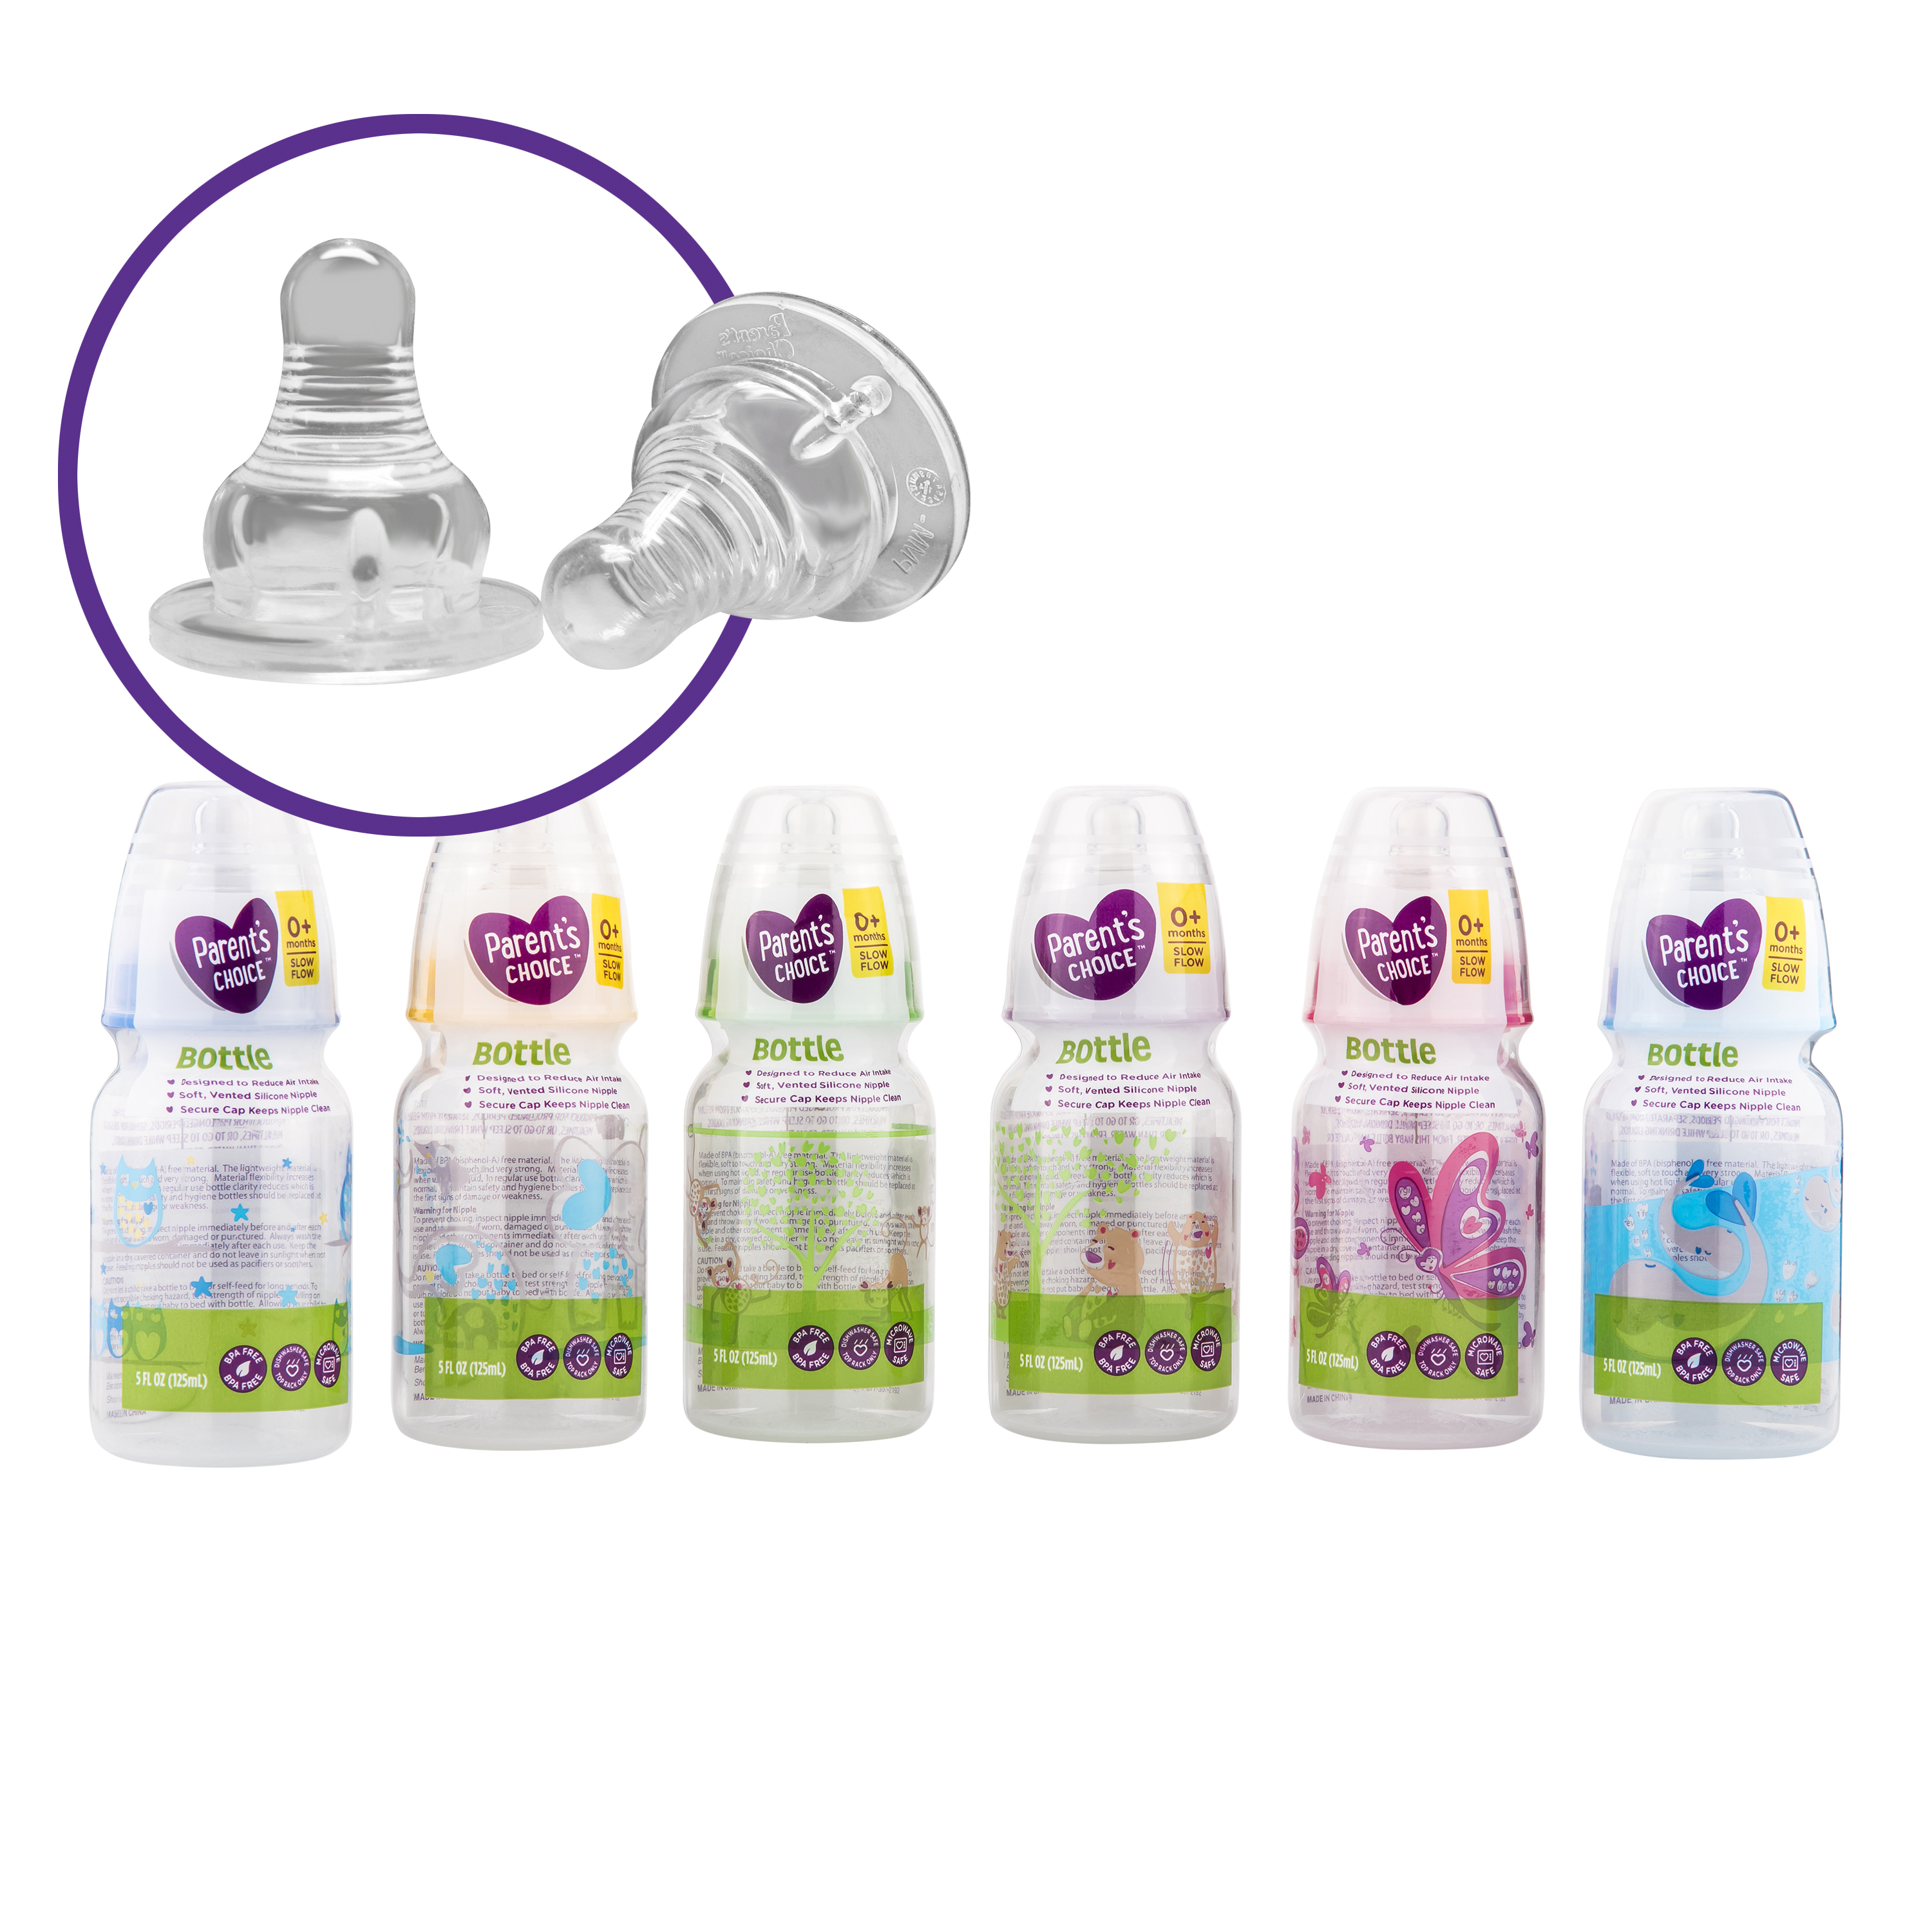 (4 Pack) Parent's Choice BPA Free Baby Bottles - 5-oz